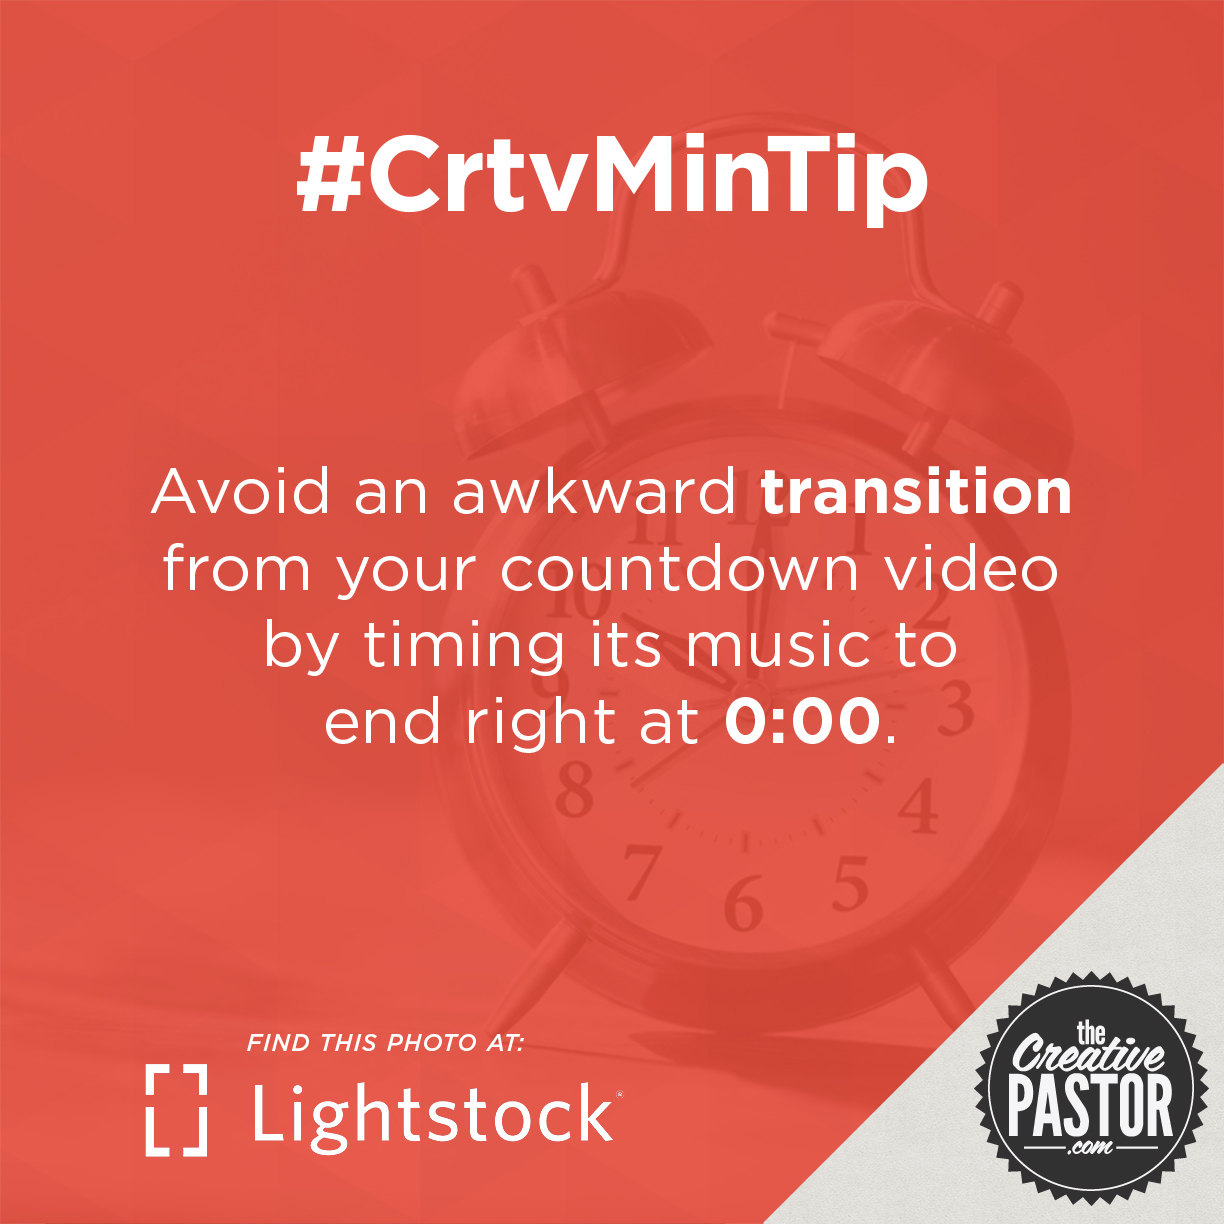 Avoid an awkward transition from your countdown video by timing its music to end right at 0:00.